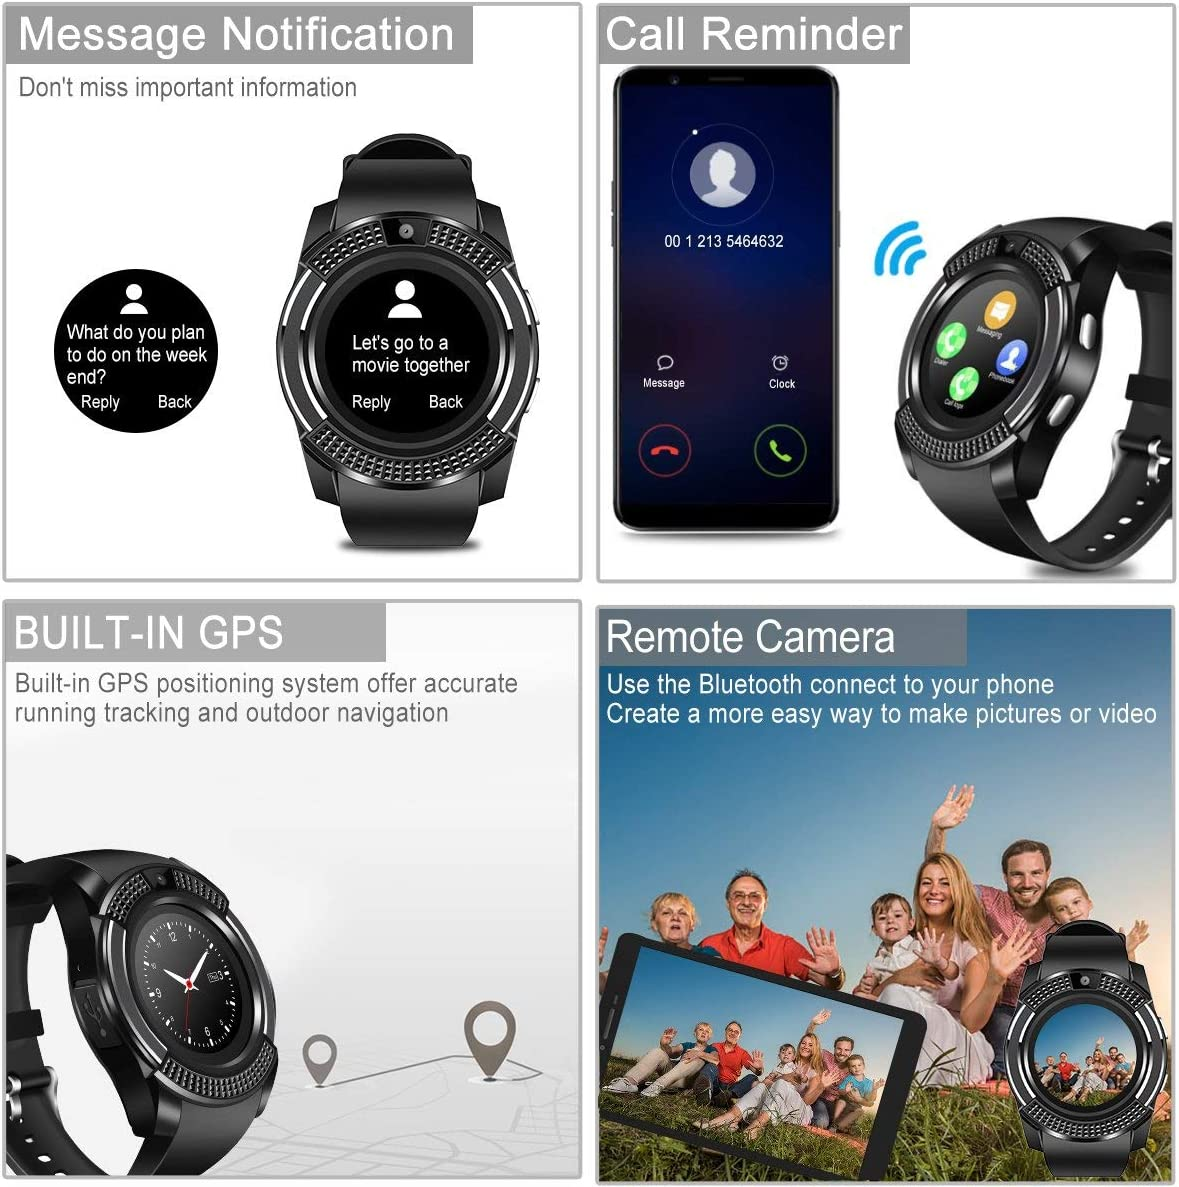 V8 Smartwatch Fitness Watch Wrist Phone Watch Touch Screen IP67 Waterproof Fitness Tracker with Heart Rate Monitor Pedometer Sports Activity Tracker ...